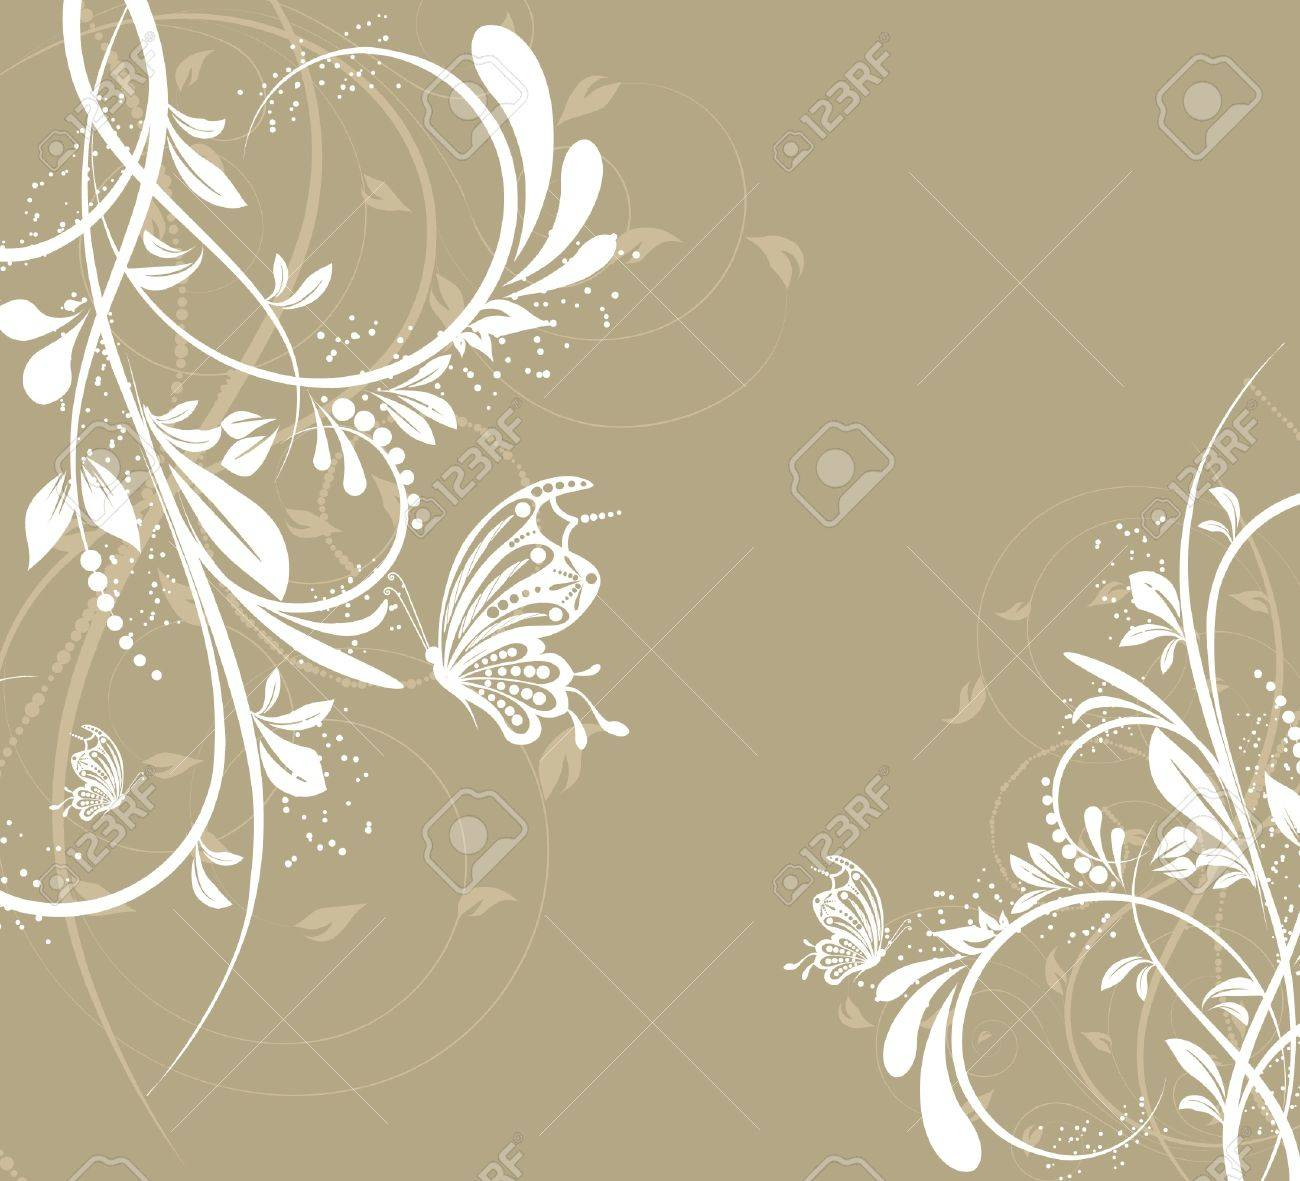 flower creative decorative abstract background butterfly Stock Vector - 9647308